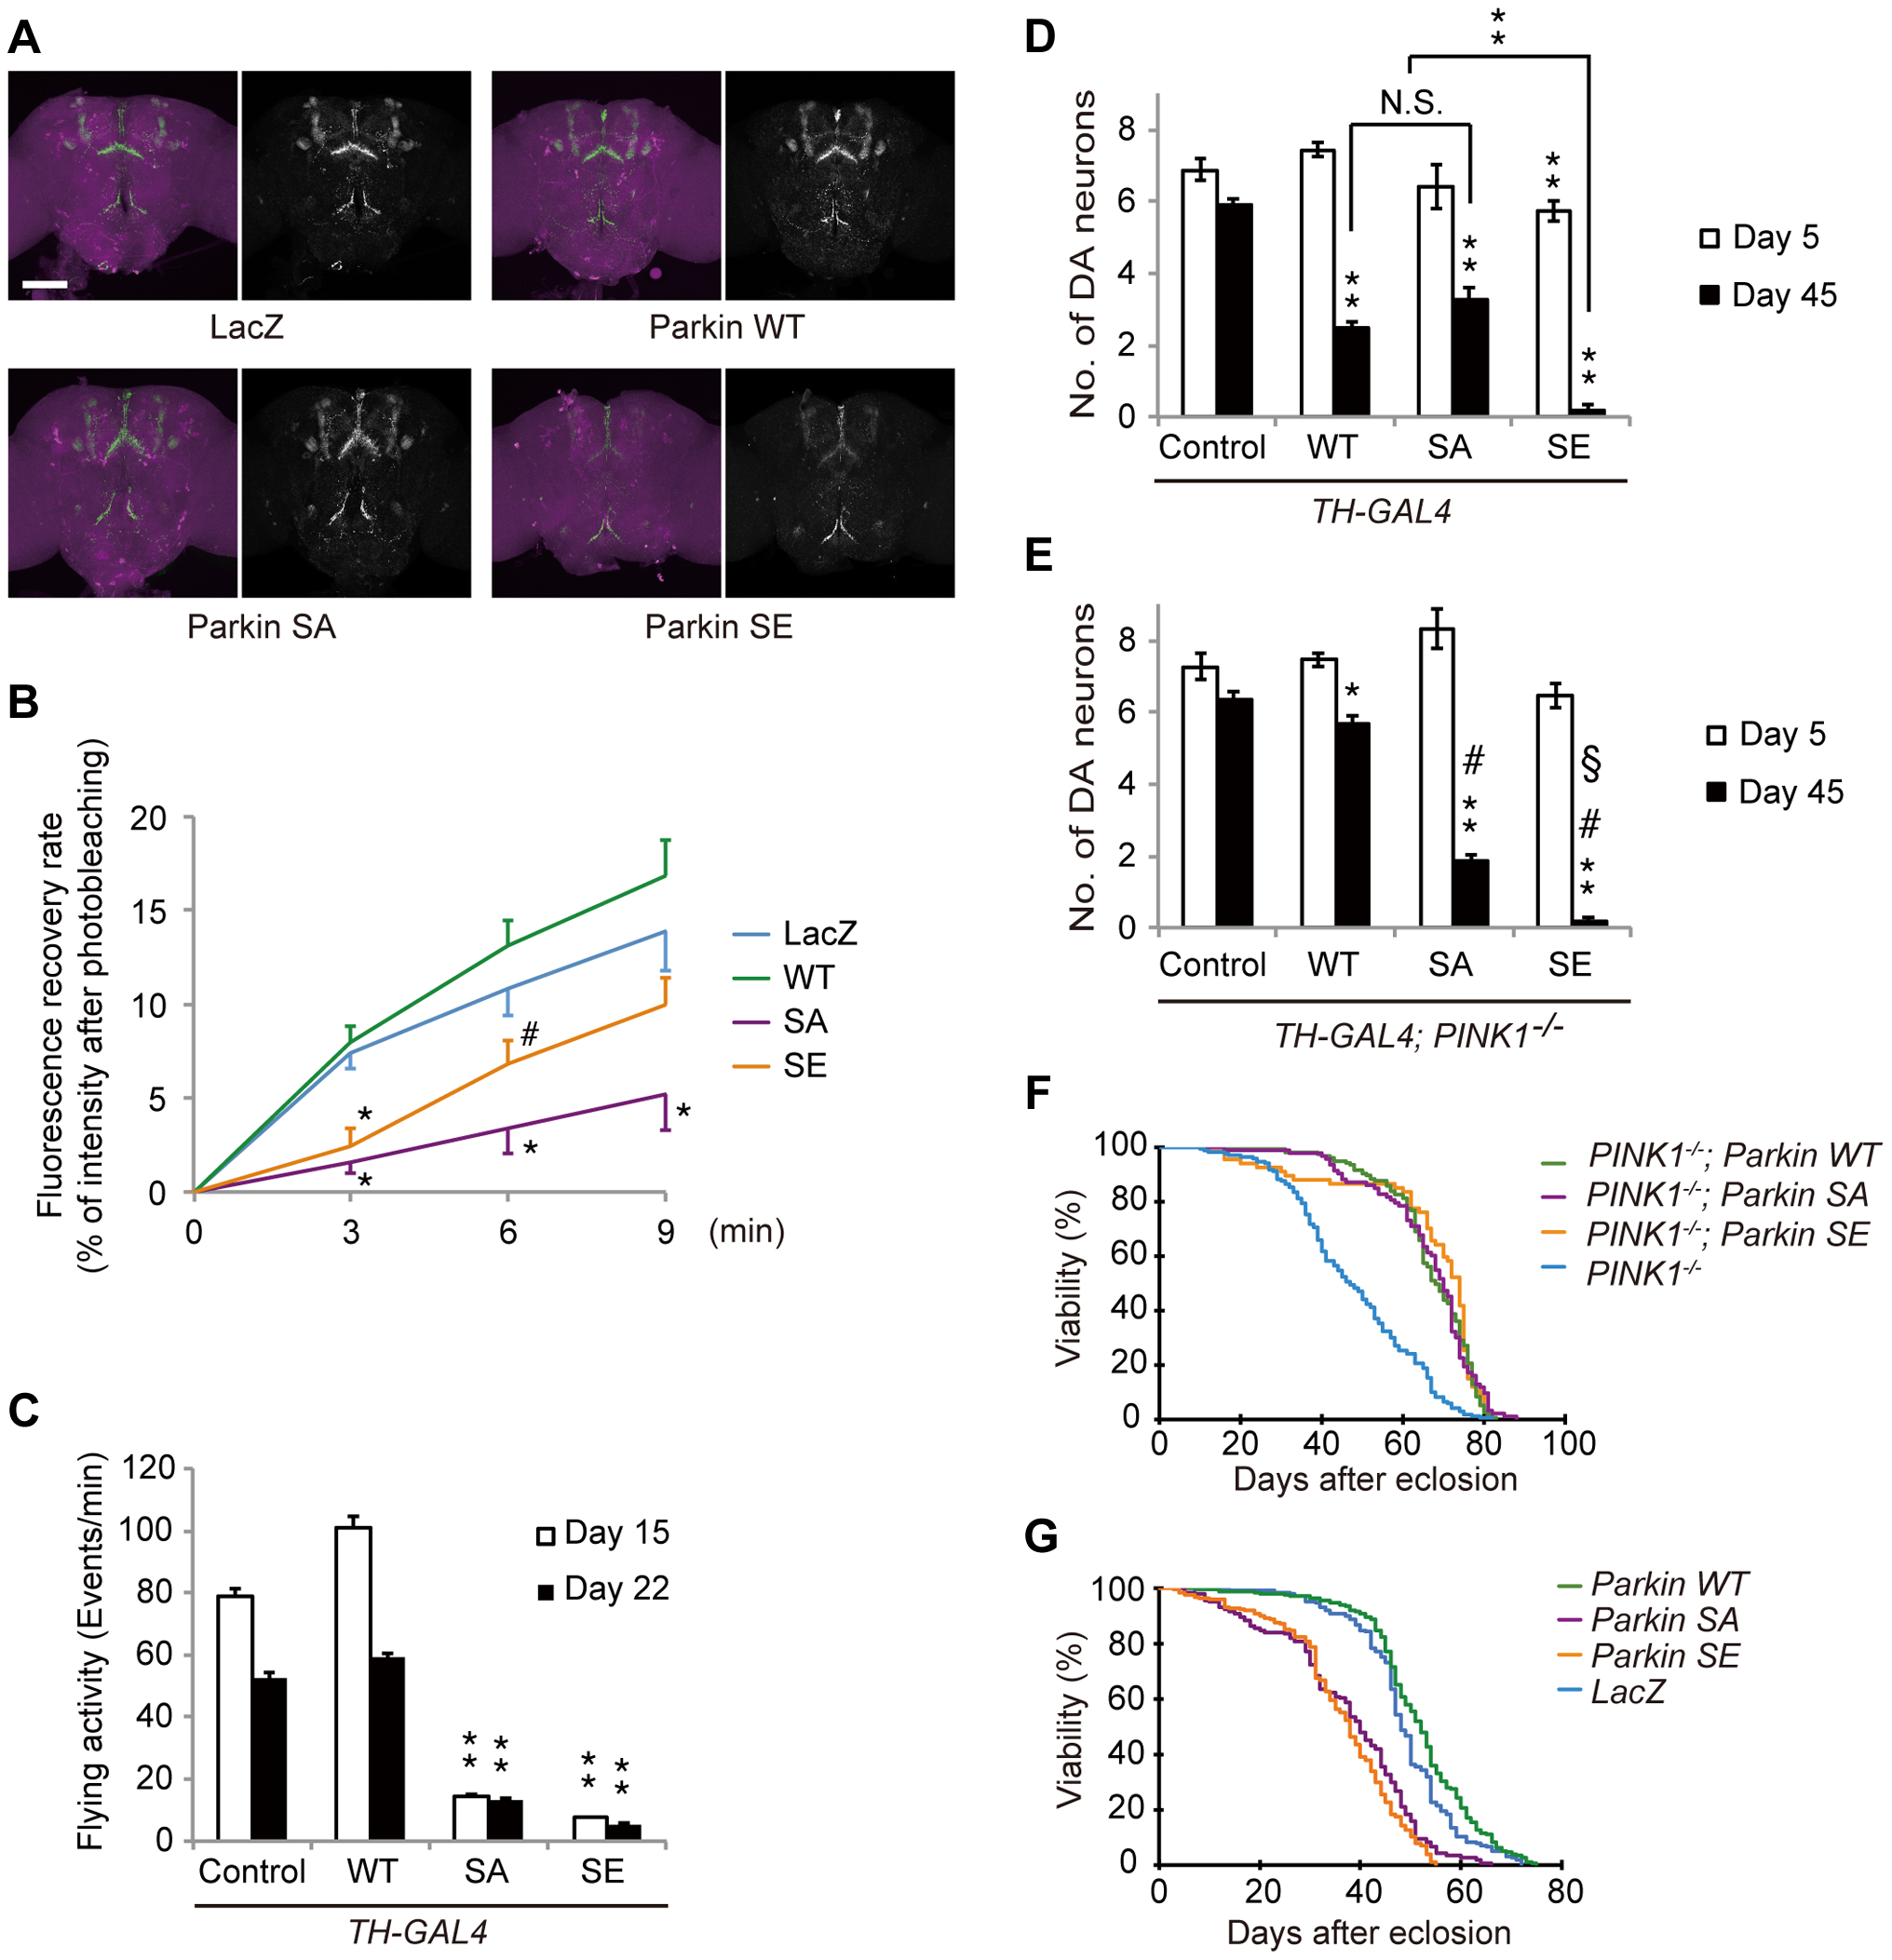 Parkin phosphorylation modulates dopaminergic function and survivability of DA neurons.